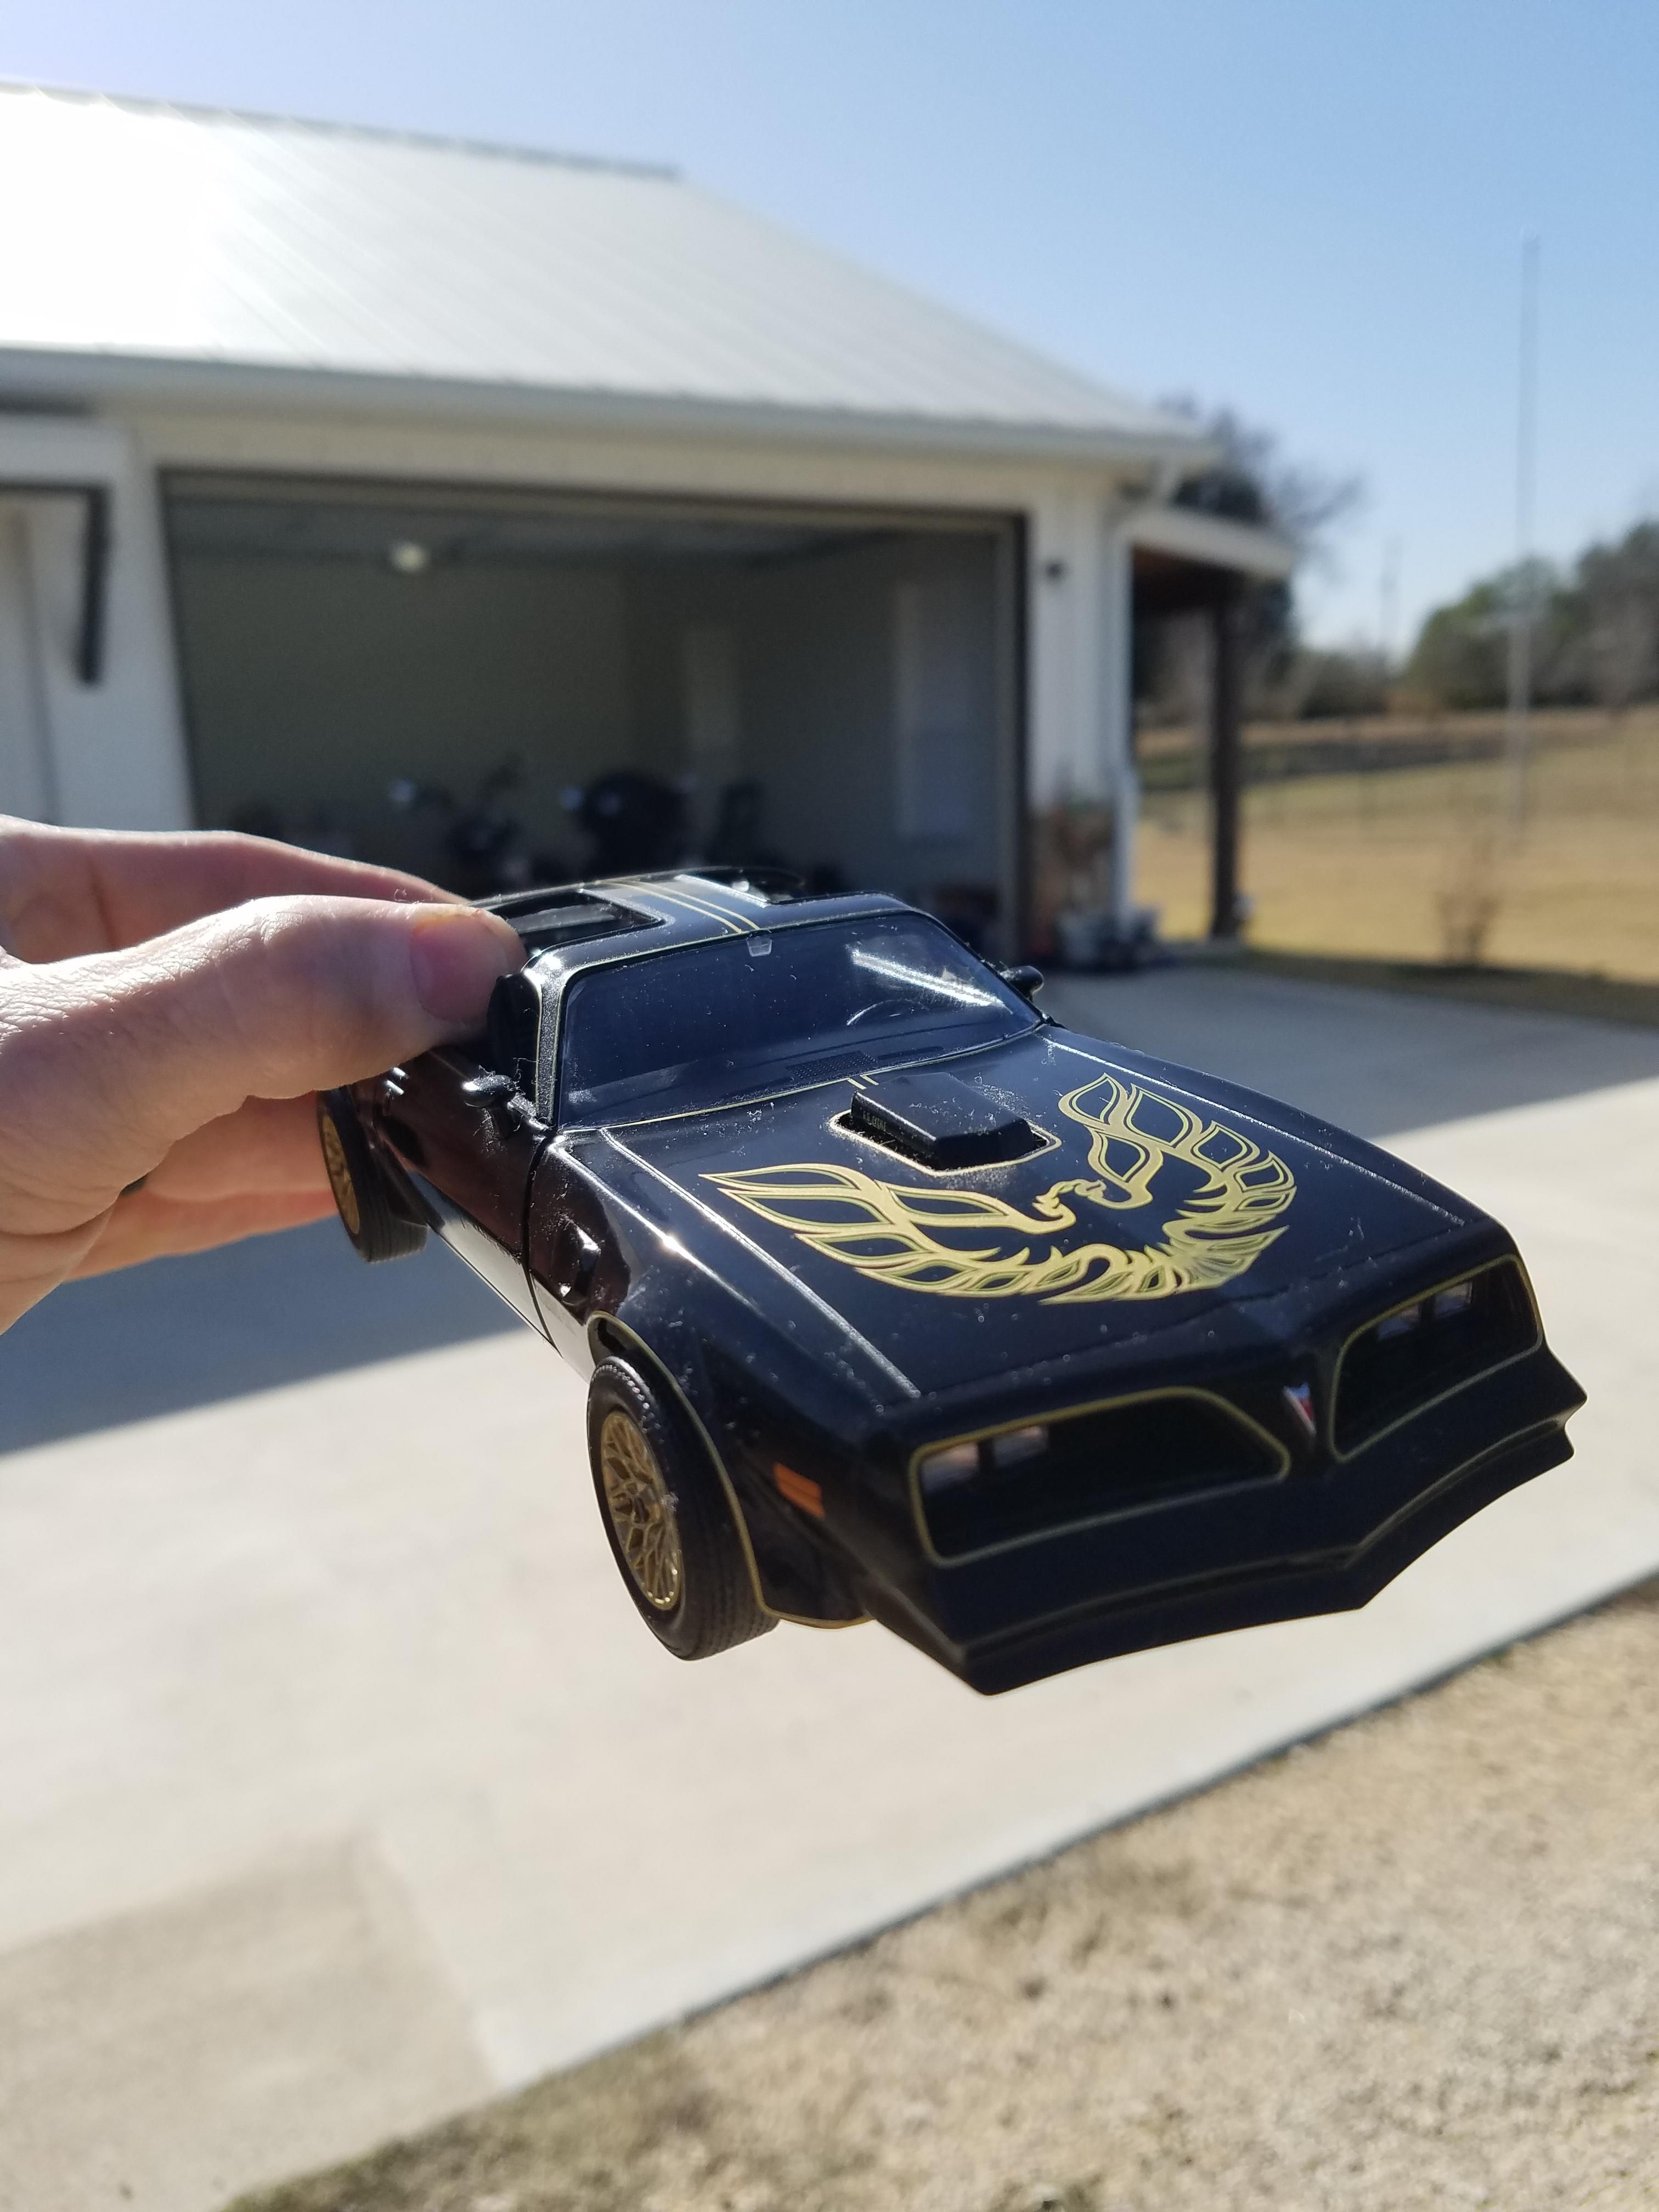 Finally got the dream car in the driveway. Don't hate.